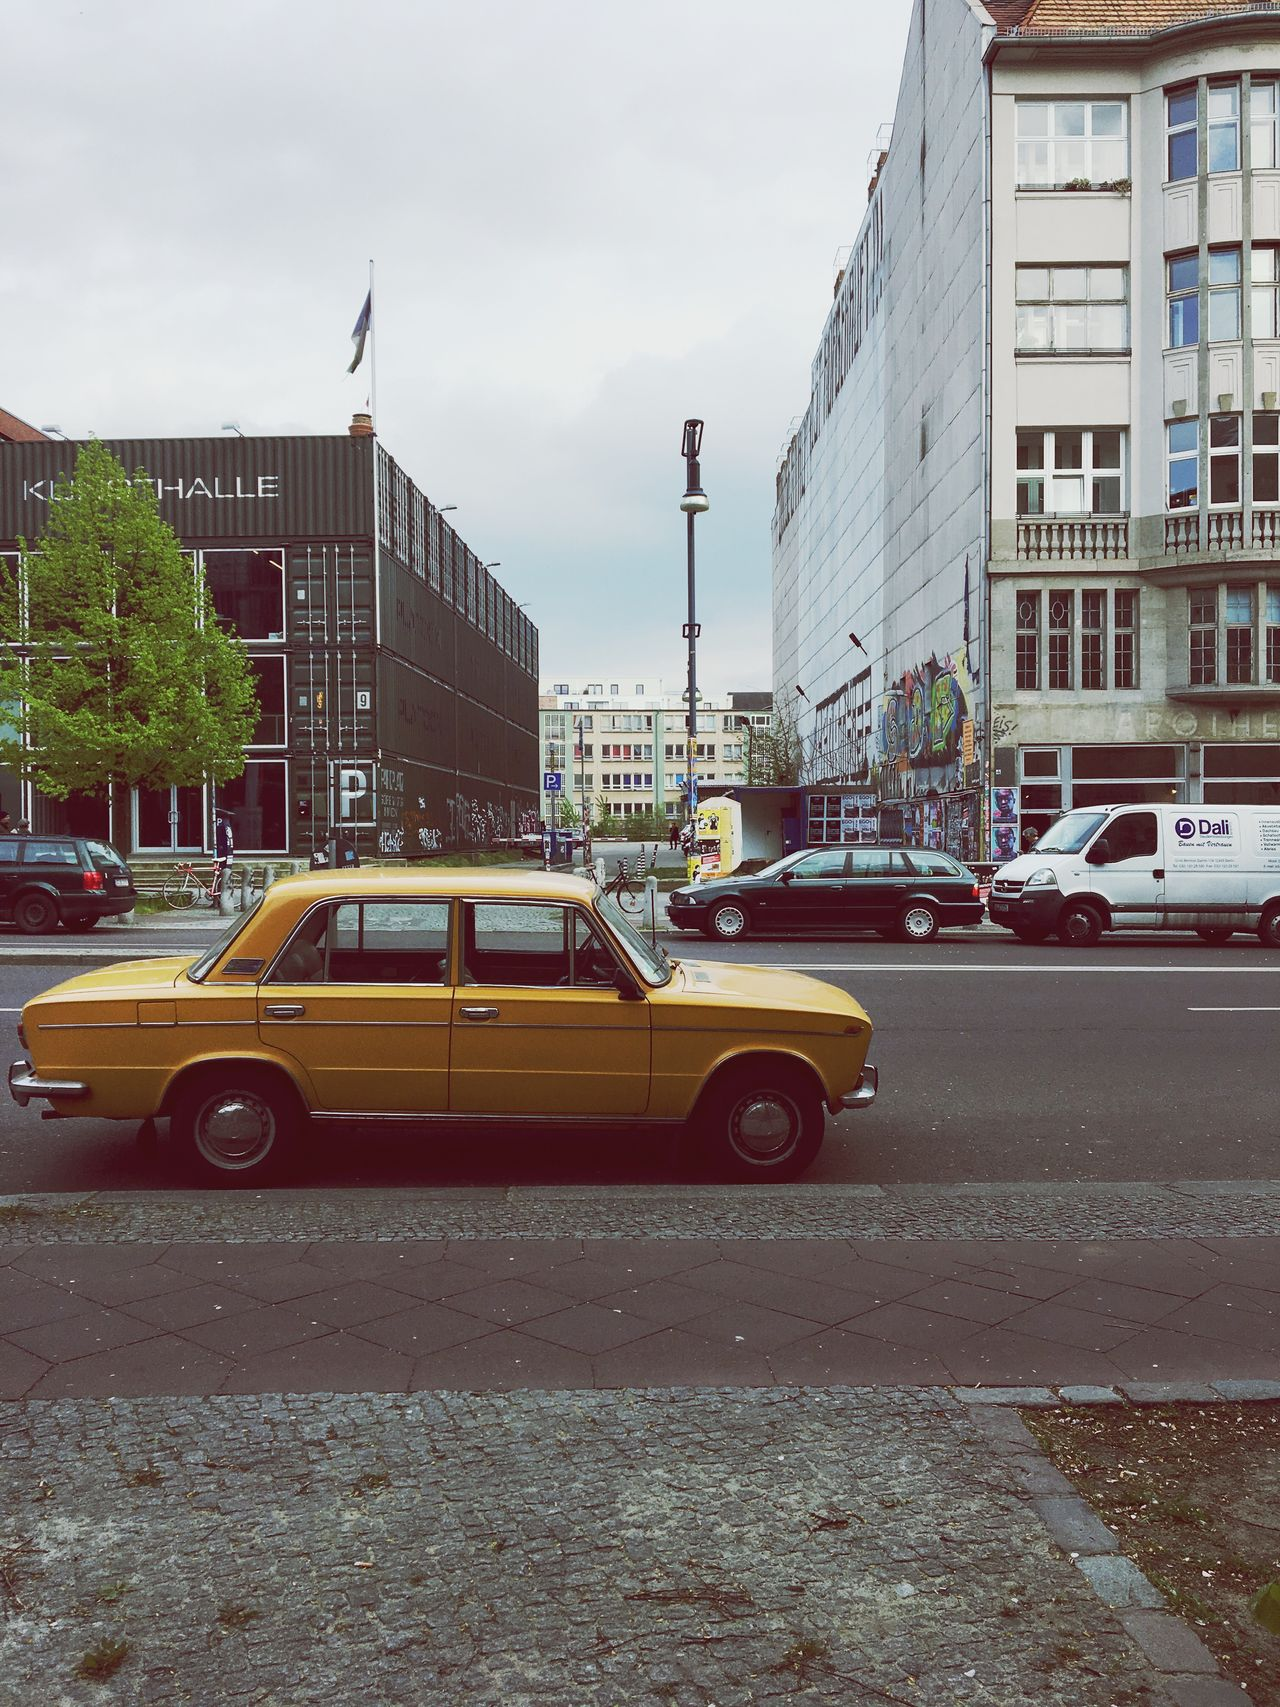 Berlin Schönhauser Allee Schönhauserallee Berlin Mitte Temporary  Gentrification Gentrifizierung Yellow Car Vintage Cars Back In The 80' ? Btw it's Cinematographic Late Afternoon Light Late Afternoon Kunsthalle Container Building Neighborhood Map